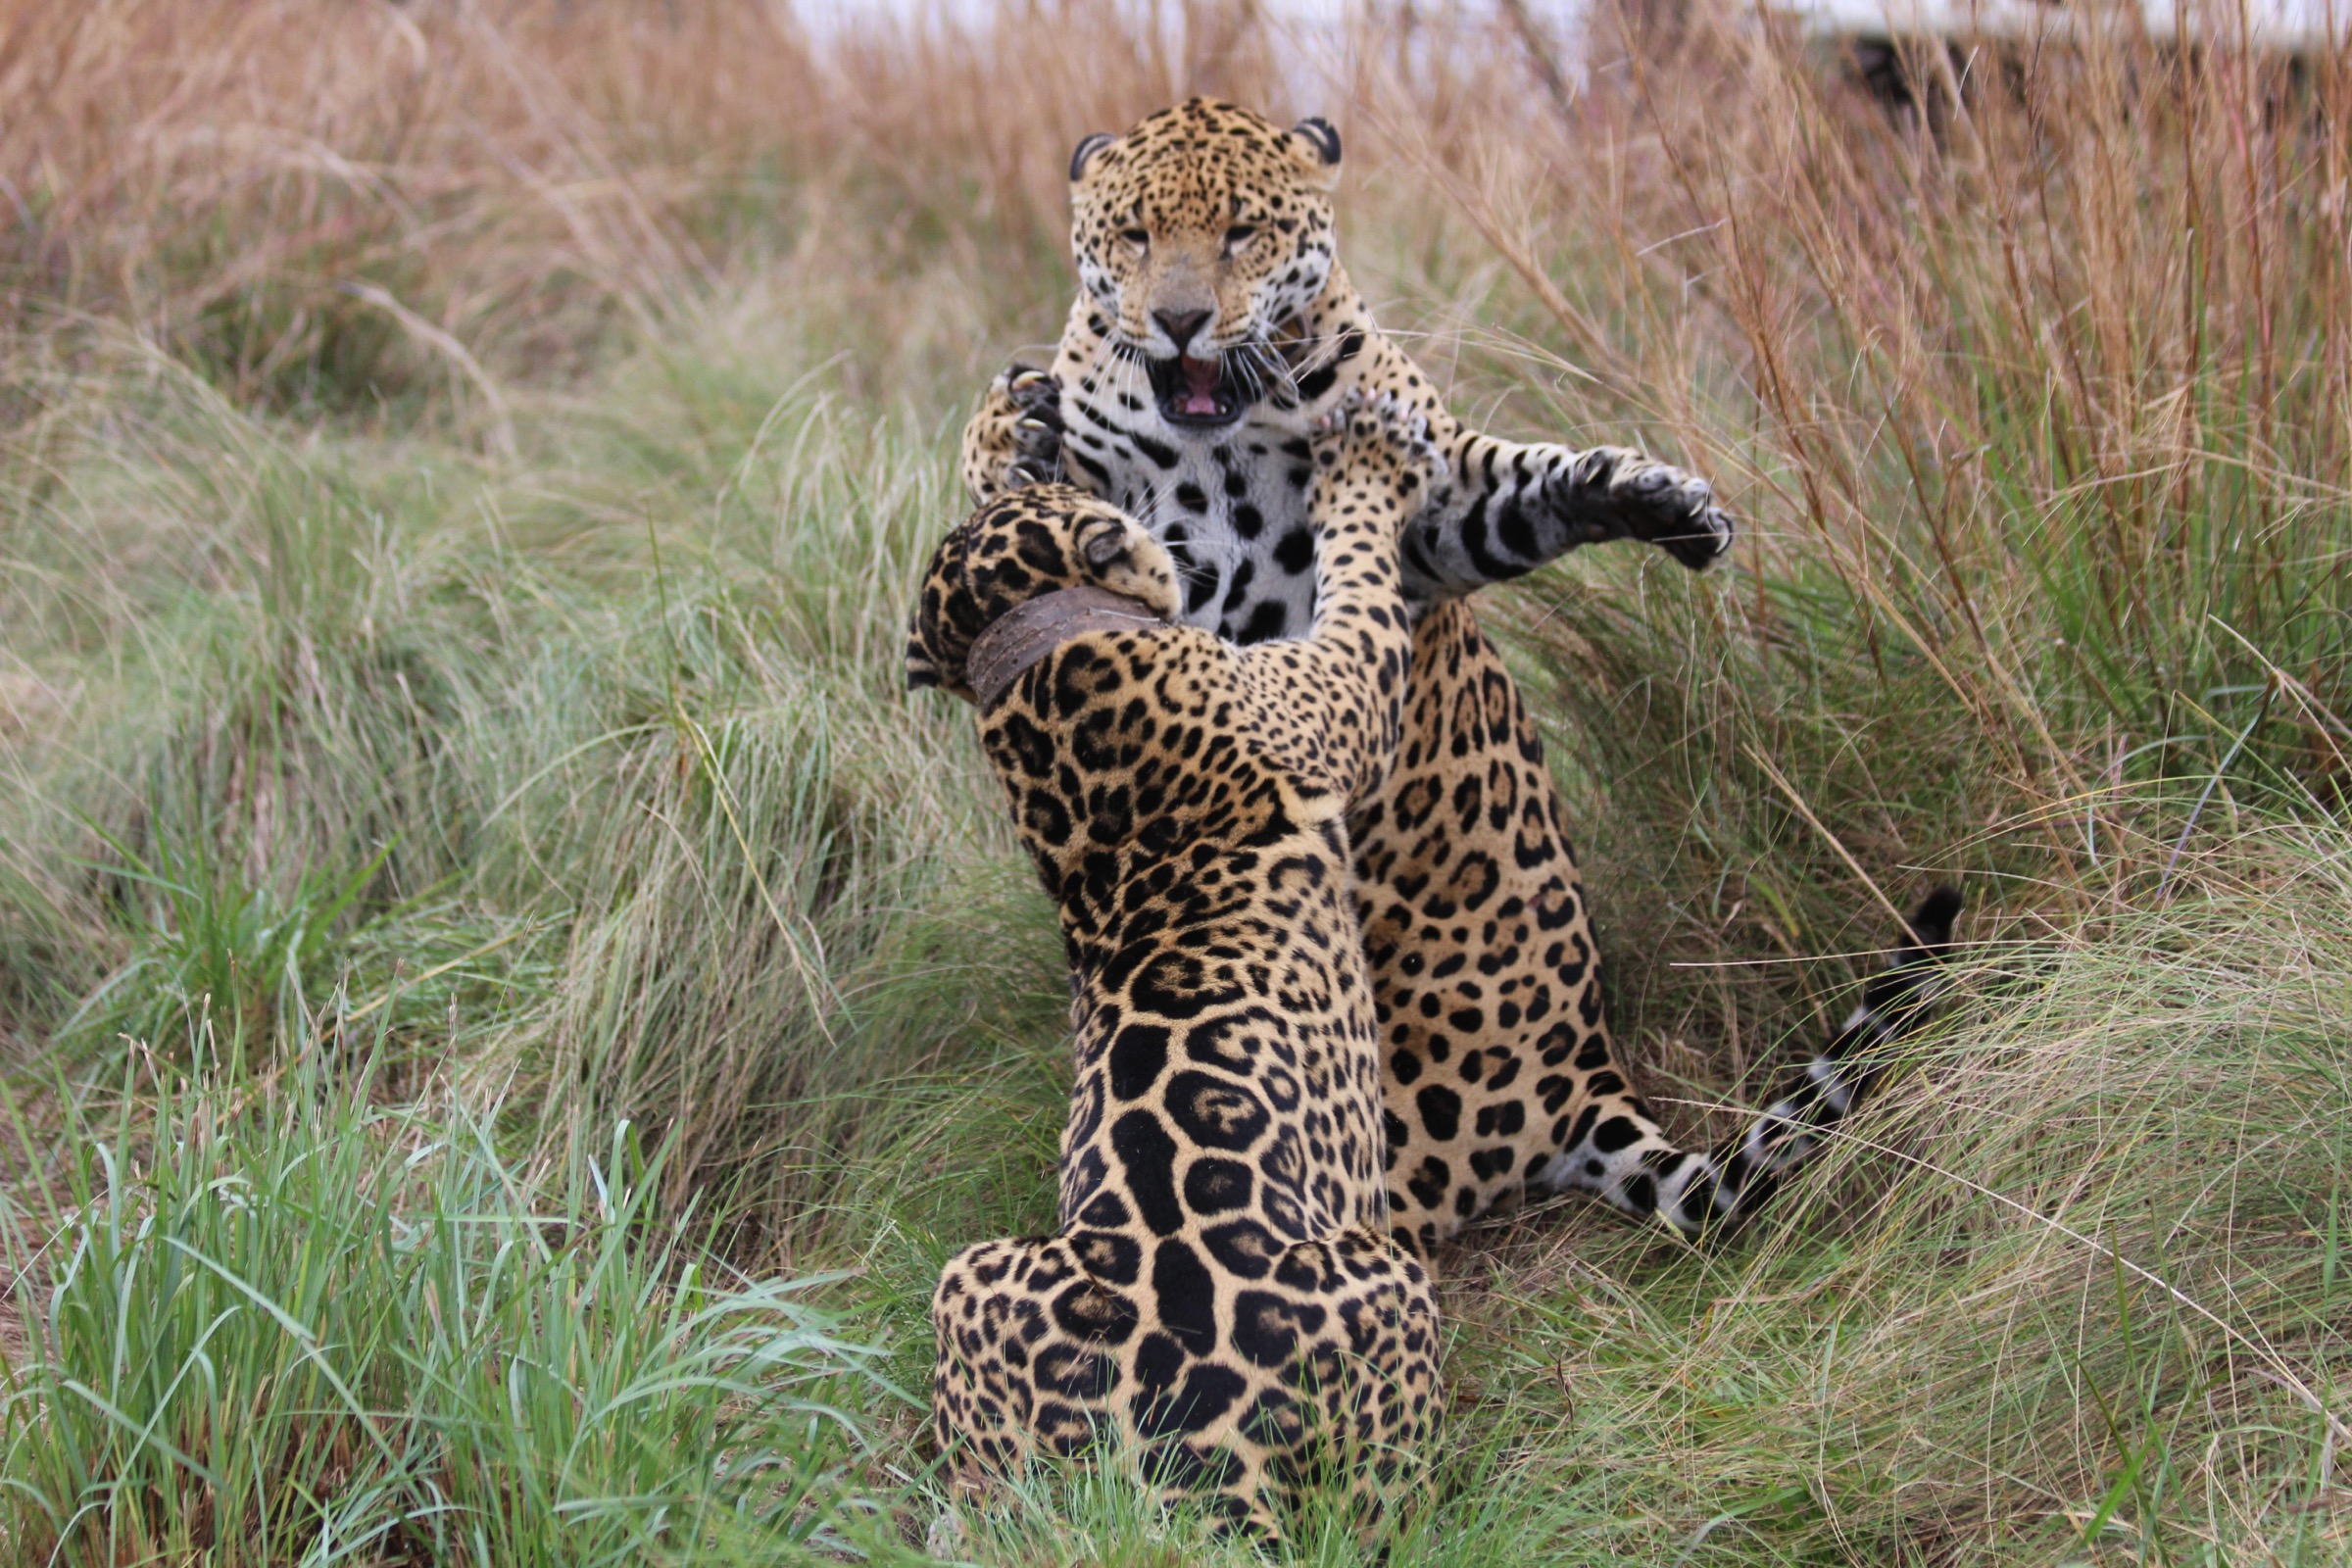 Adult jaguars Nahuel and Tobuna spar inside their breeding inclosure. It is hoped that the pair will produce the first cubs to be reintroduced to the wild in Iberá.—Photo by Karina Lerdrup Spørring